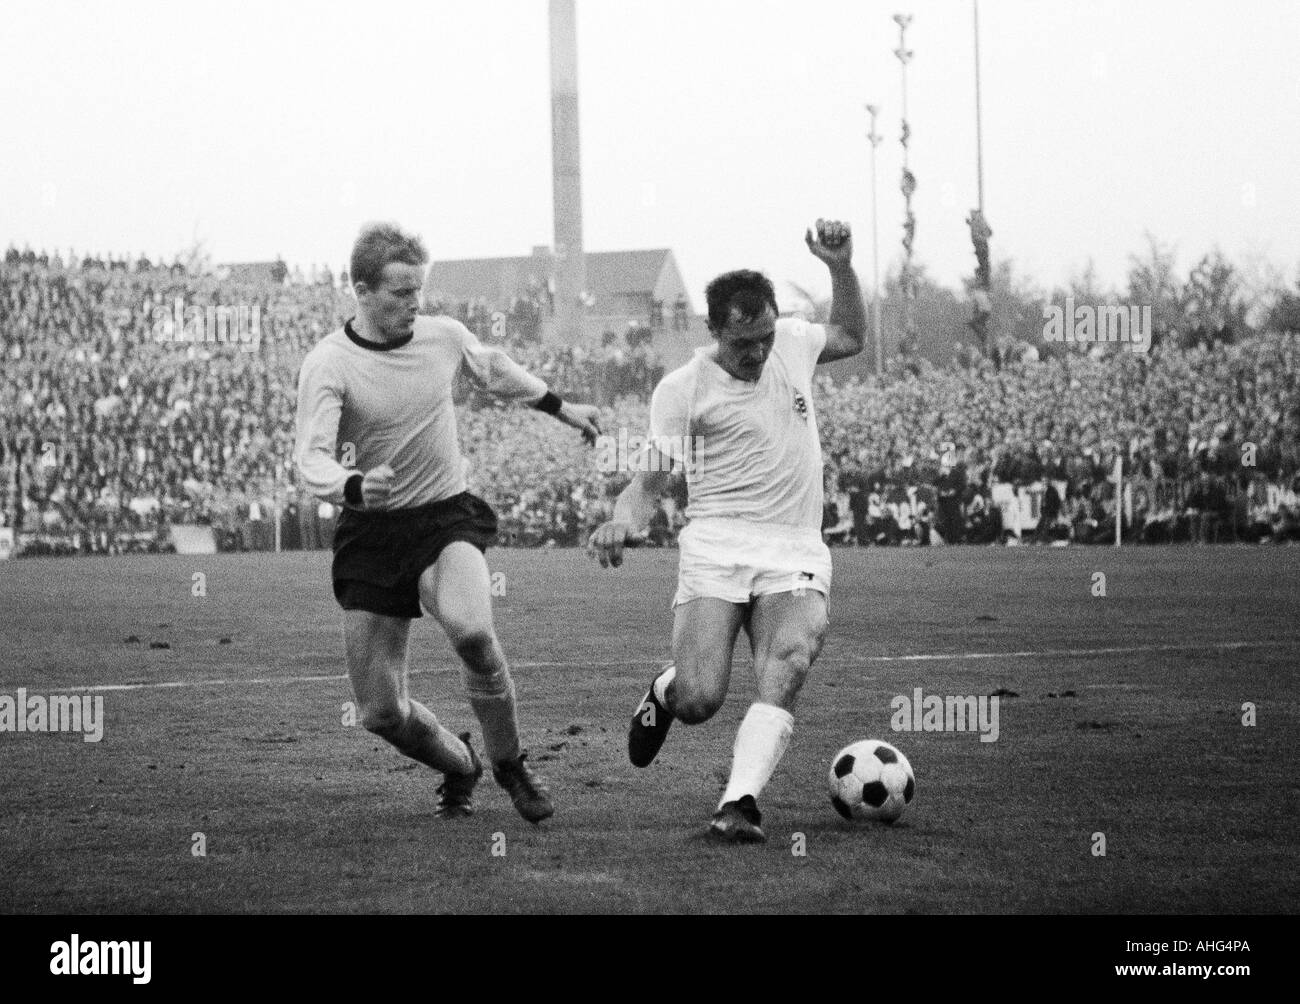 football, Bundesliga, 1967/1968, Borussia Moenchengladbach versus Borussia Dortmund 2:2, Boekelberg Stadium, scene of the match, duel between Theodor Redder (Dortmund, left) and Peter Meyer (Gladbach) - Stock Image